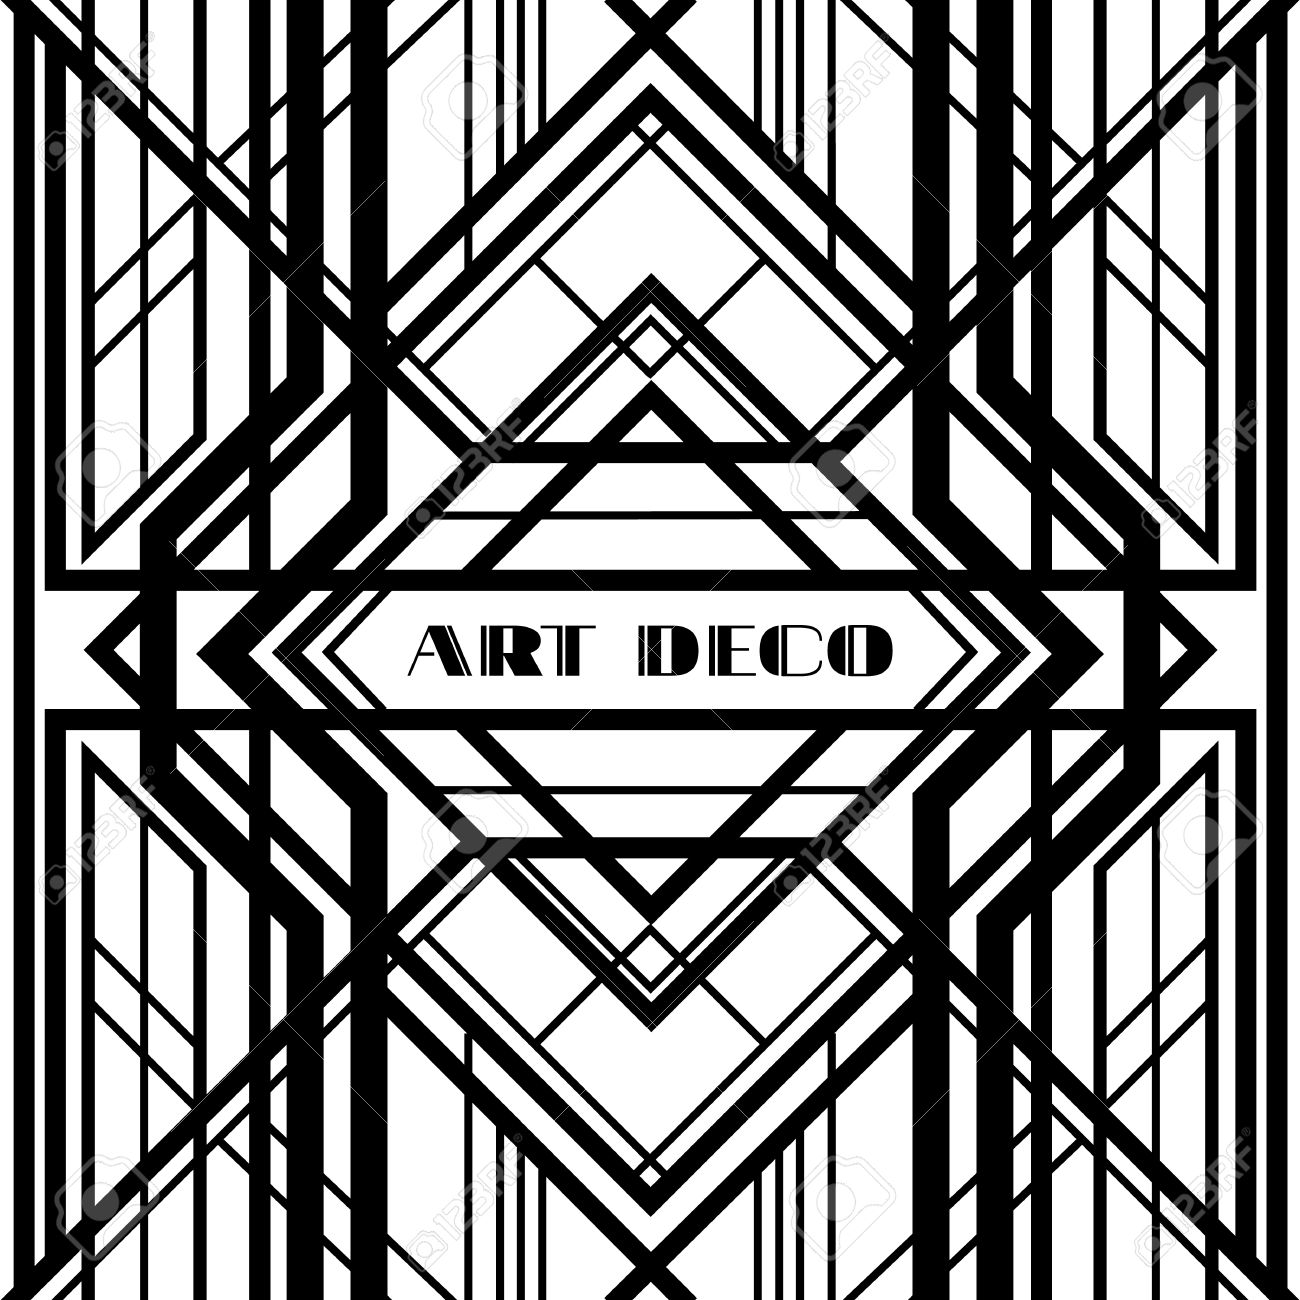 Art Deco Grille Metallic Abstract Geometric Pattern In The Style Stock Vector